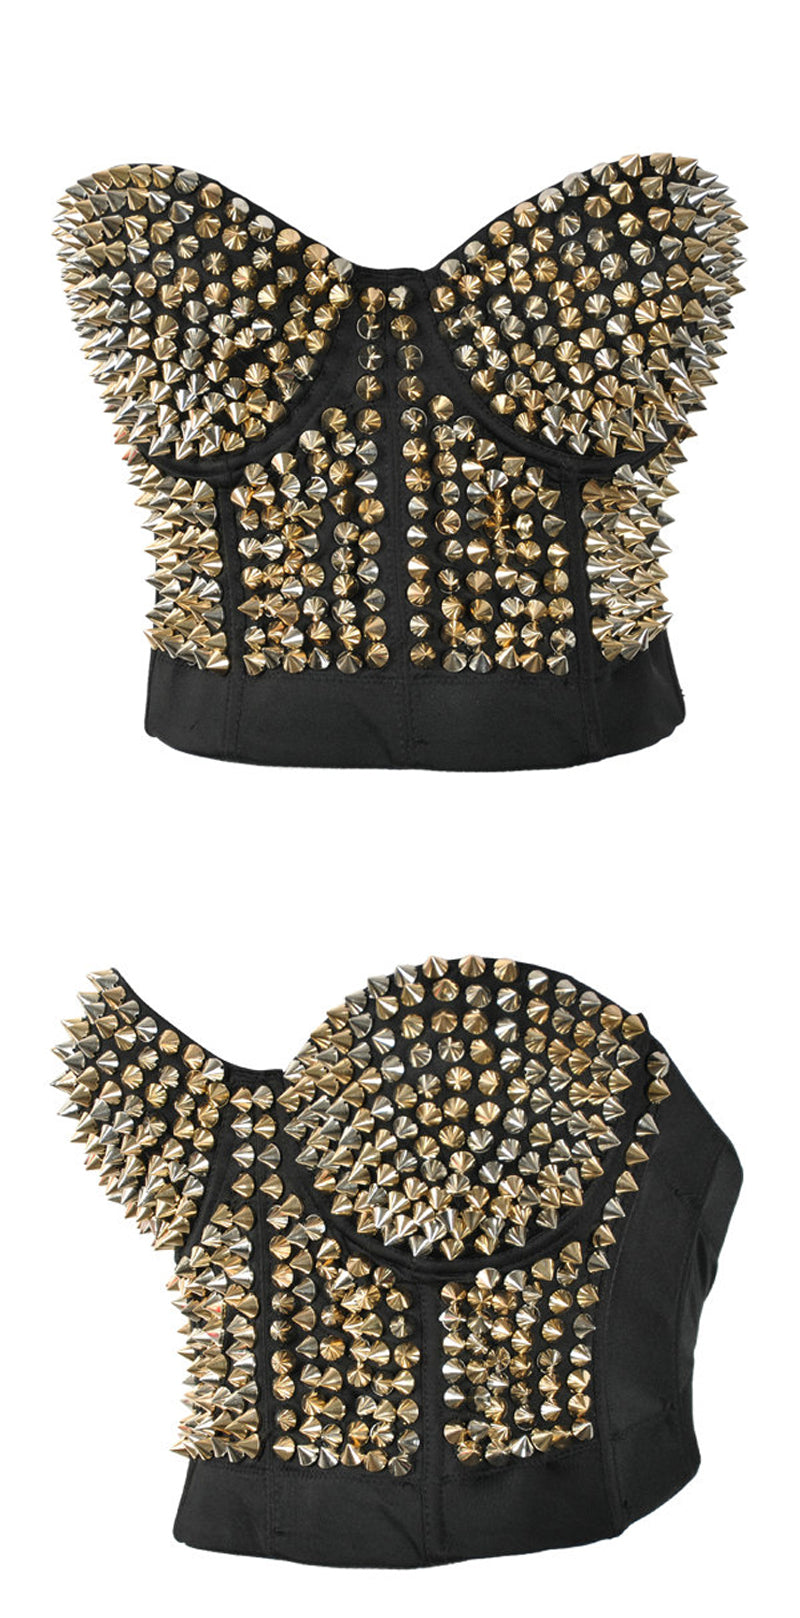 Silver Or Gold Spiked Bra Top